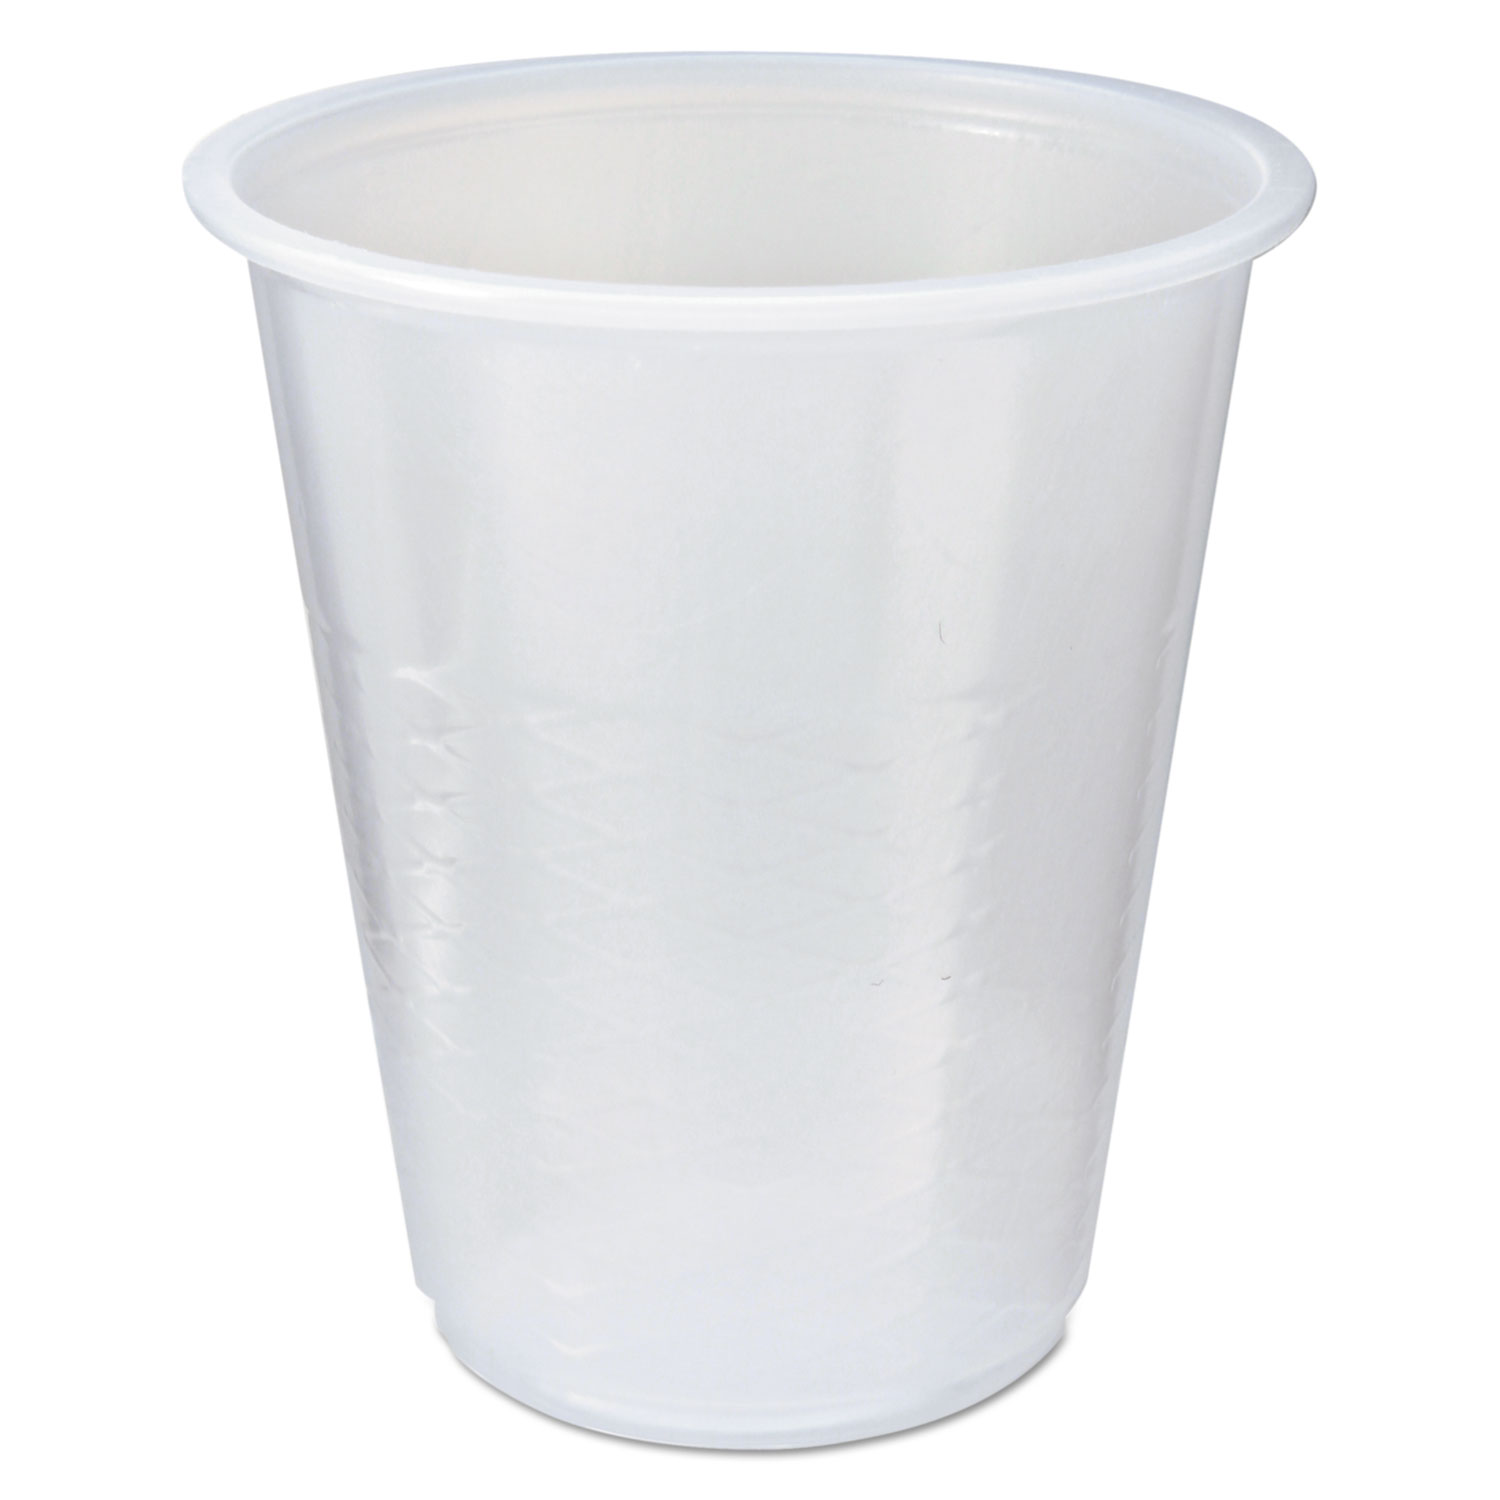 RK Crisscross Cold Drink Cups, 3 Oz, Clear